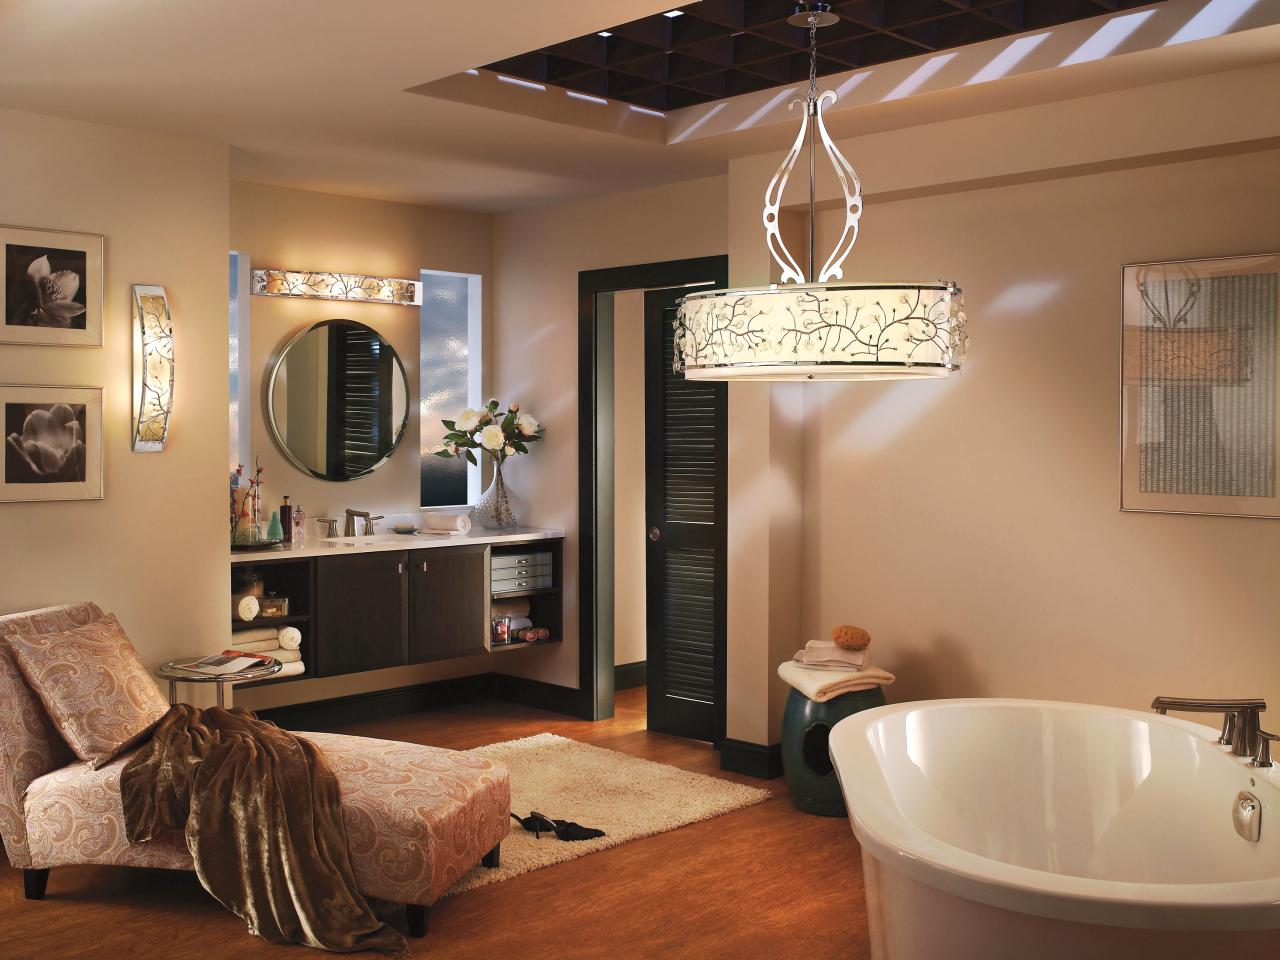 Smart bathroom lights 4